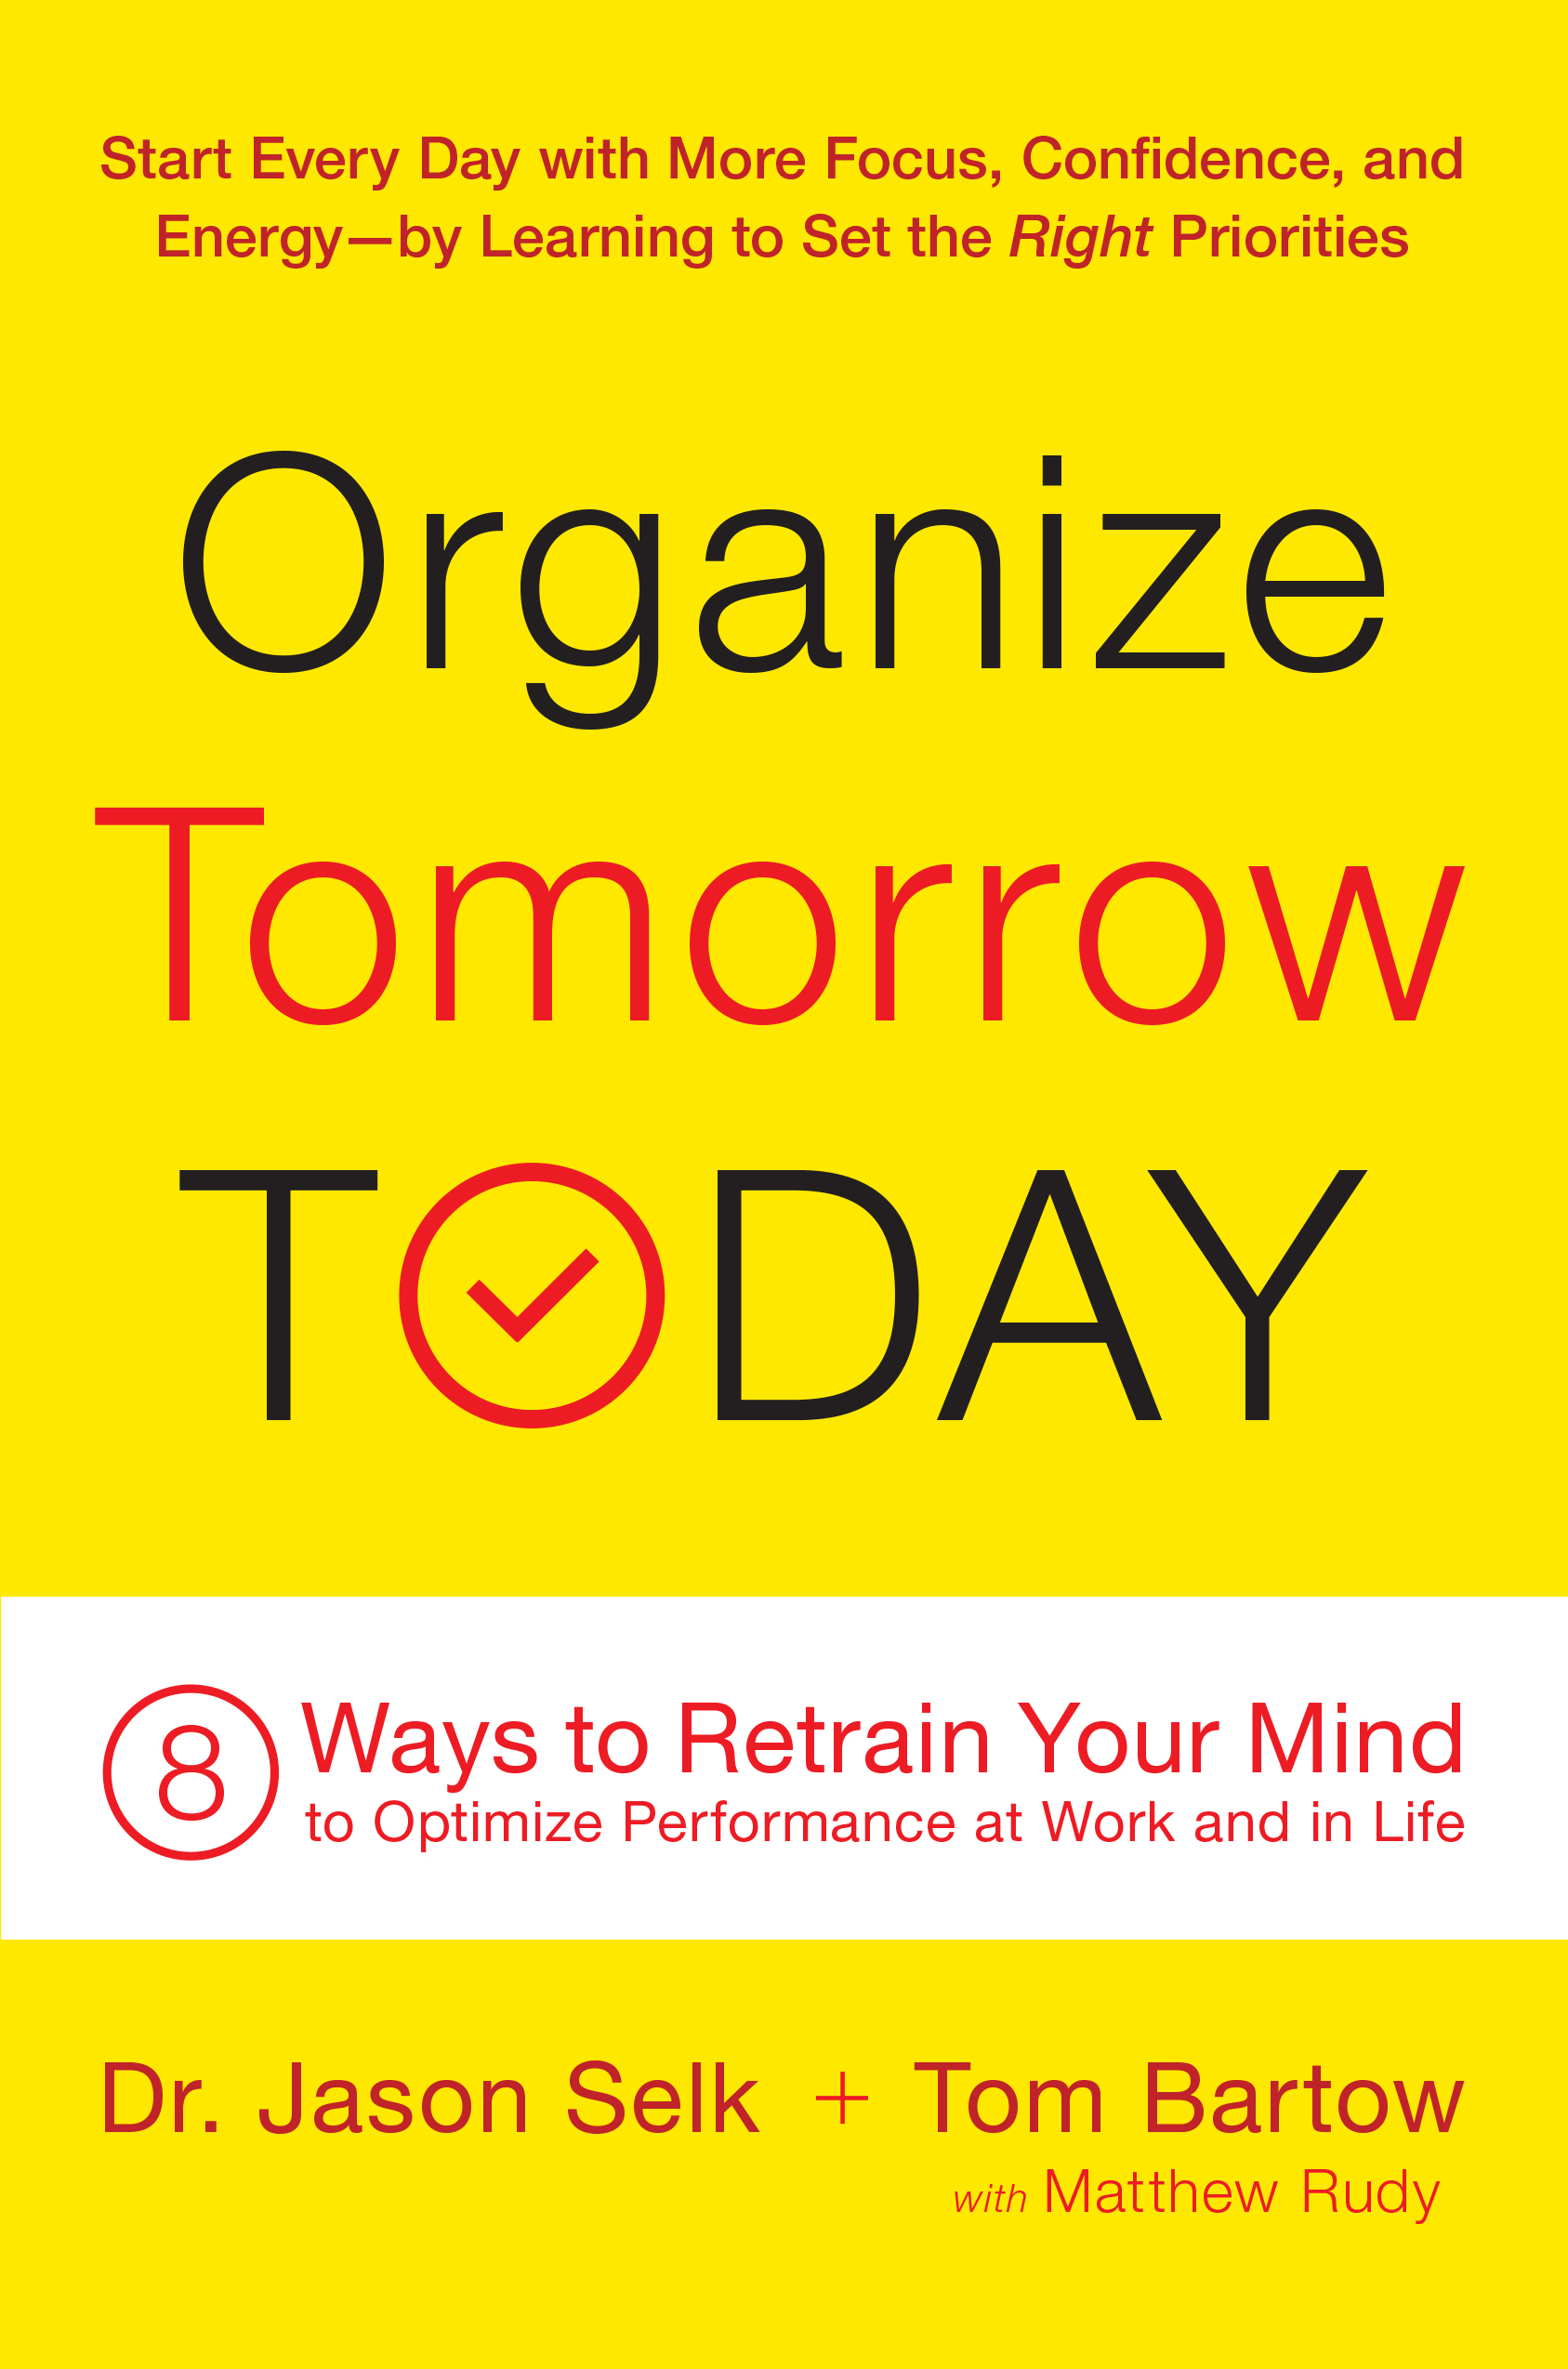 Organize-Tomorrow-Today-8-Ways-to-Retrain-Your-Mind-to-Optimize-Performance-at-Work-and-in-Life